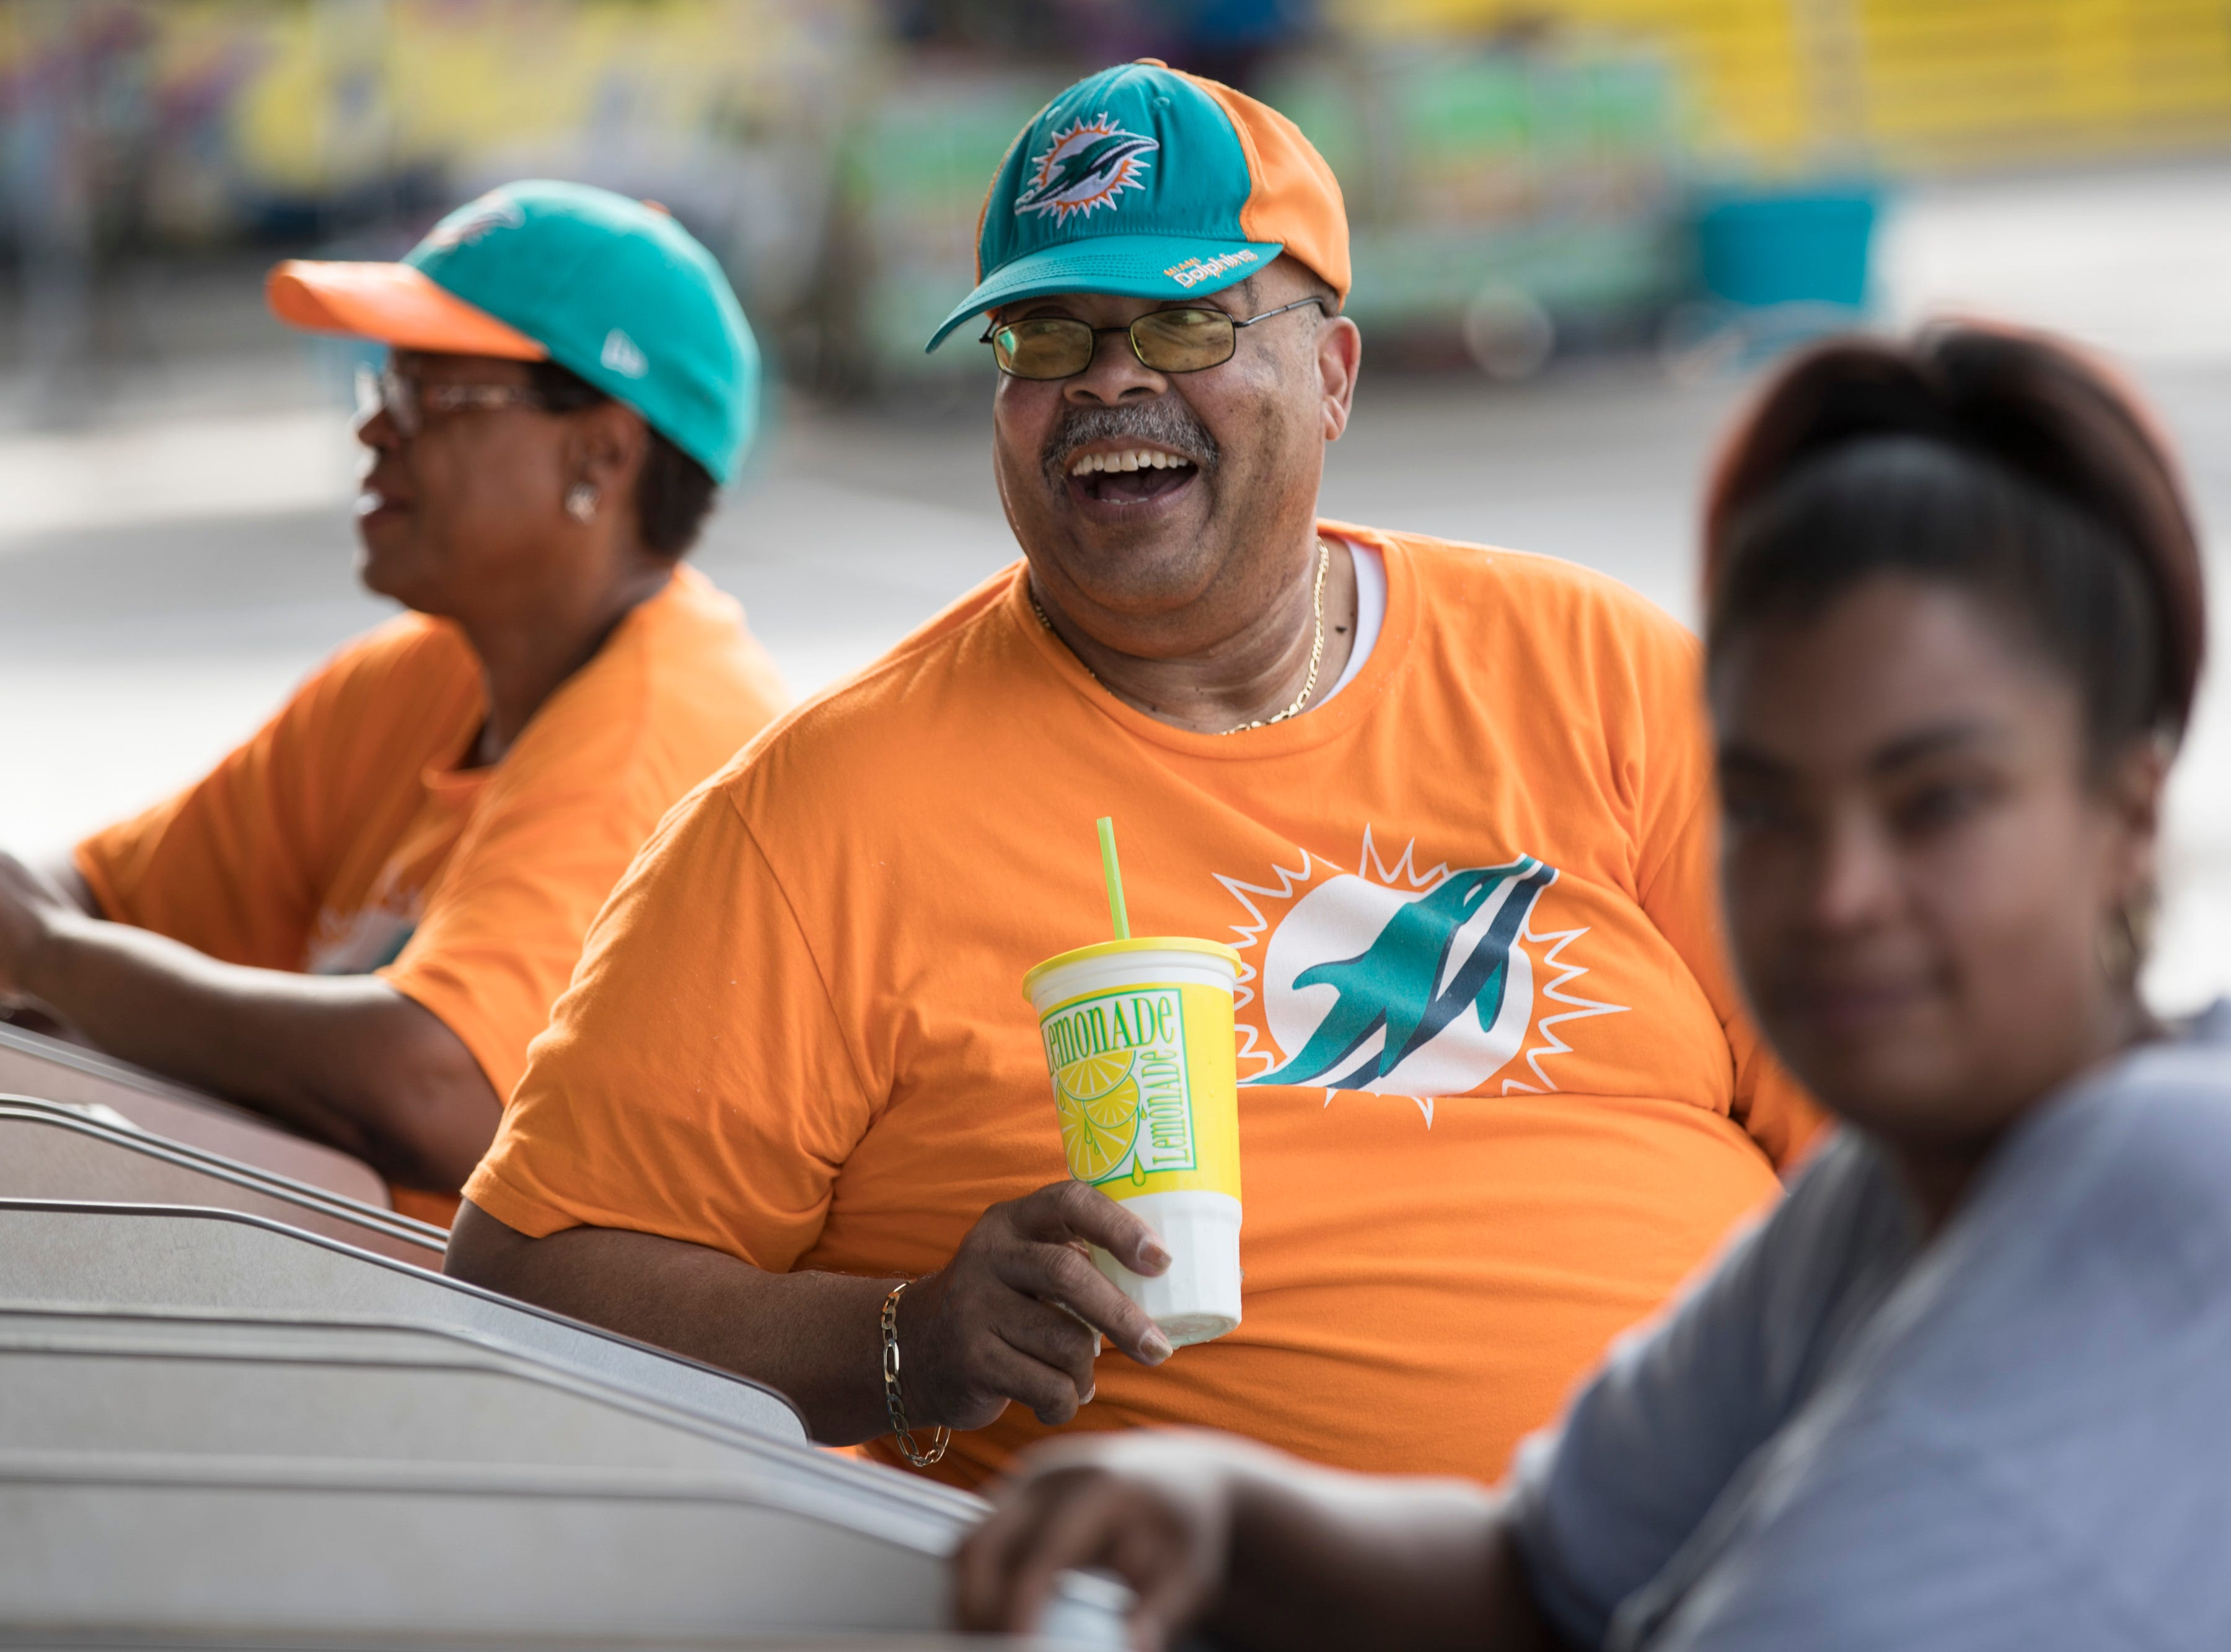 Willie Parker, center, the father of former U of L and Miami Dolphins' wide receiver DeVantae Parker, has a laugh with family at the Kentucky State Fair on Monday. Aug. 20, 2018